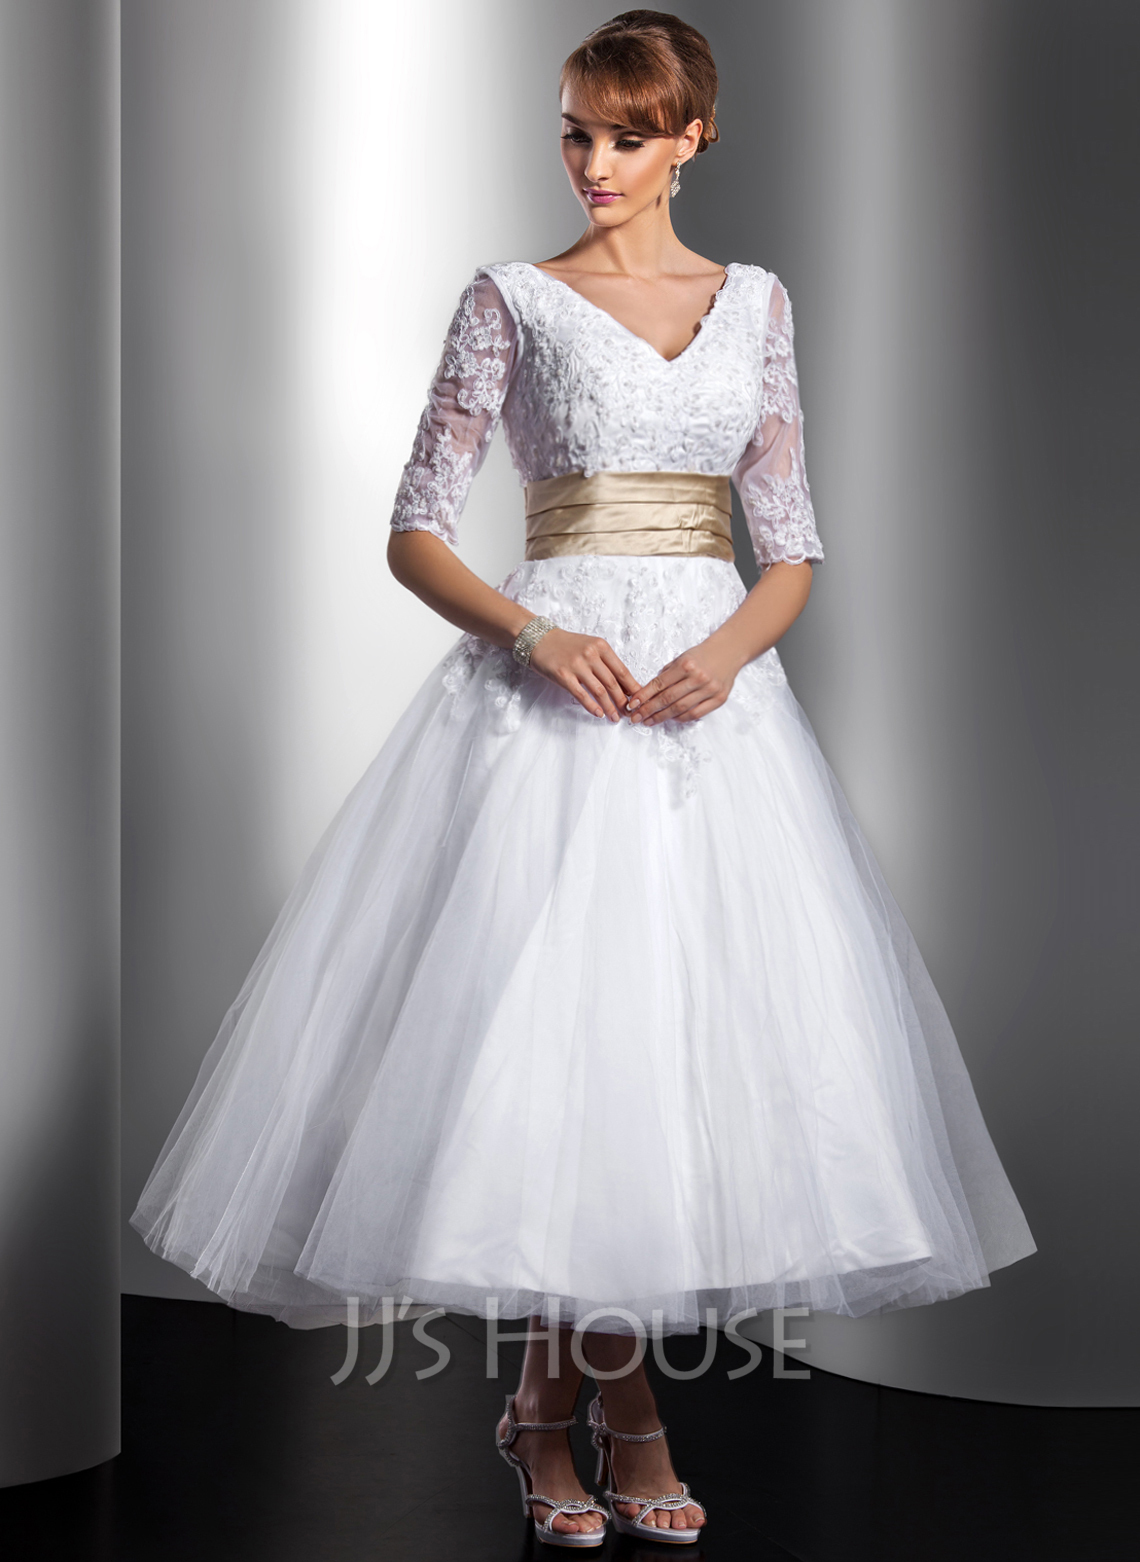 c92021bcb10 Ball-Gown V-neck Tea-Length Tulle Wedding Dress With Sash Beading  Appliques. Loading zoom